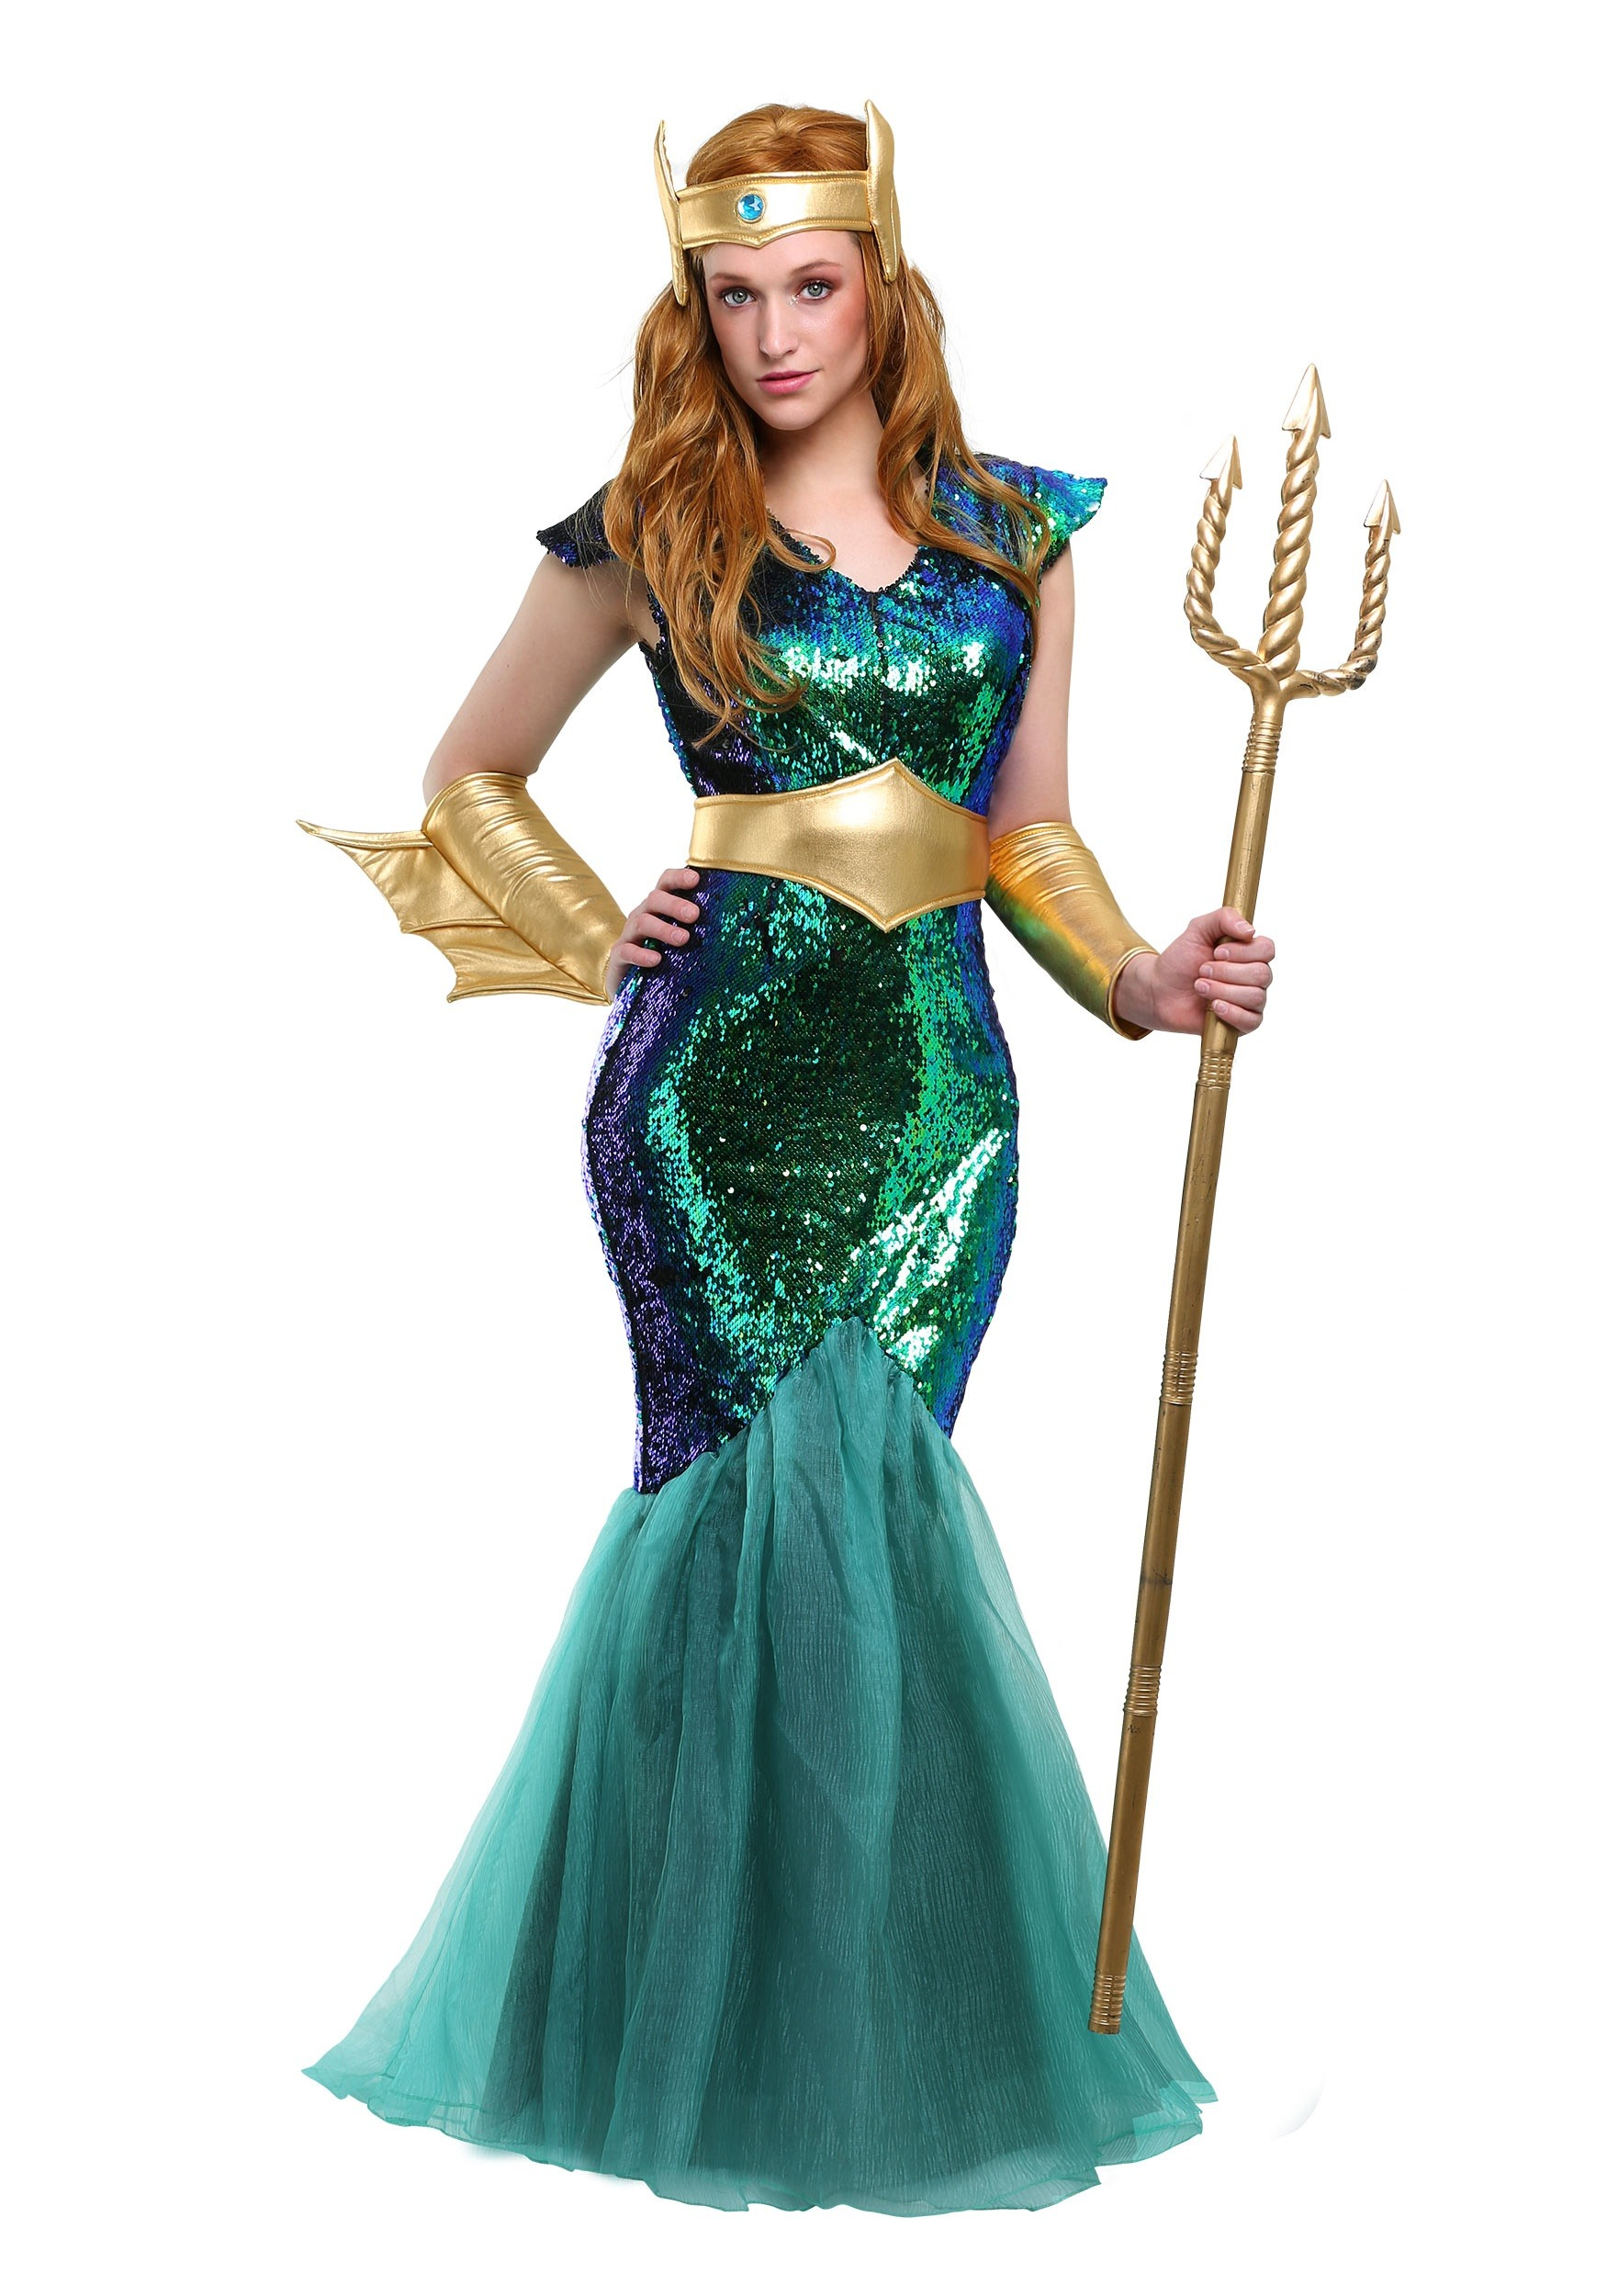 Sea Creature Costumes - HalloweenCostumes.com